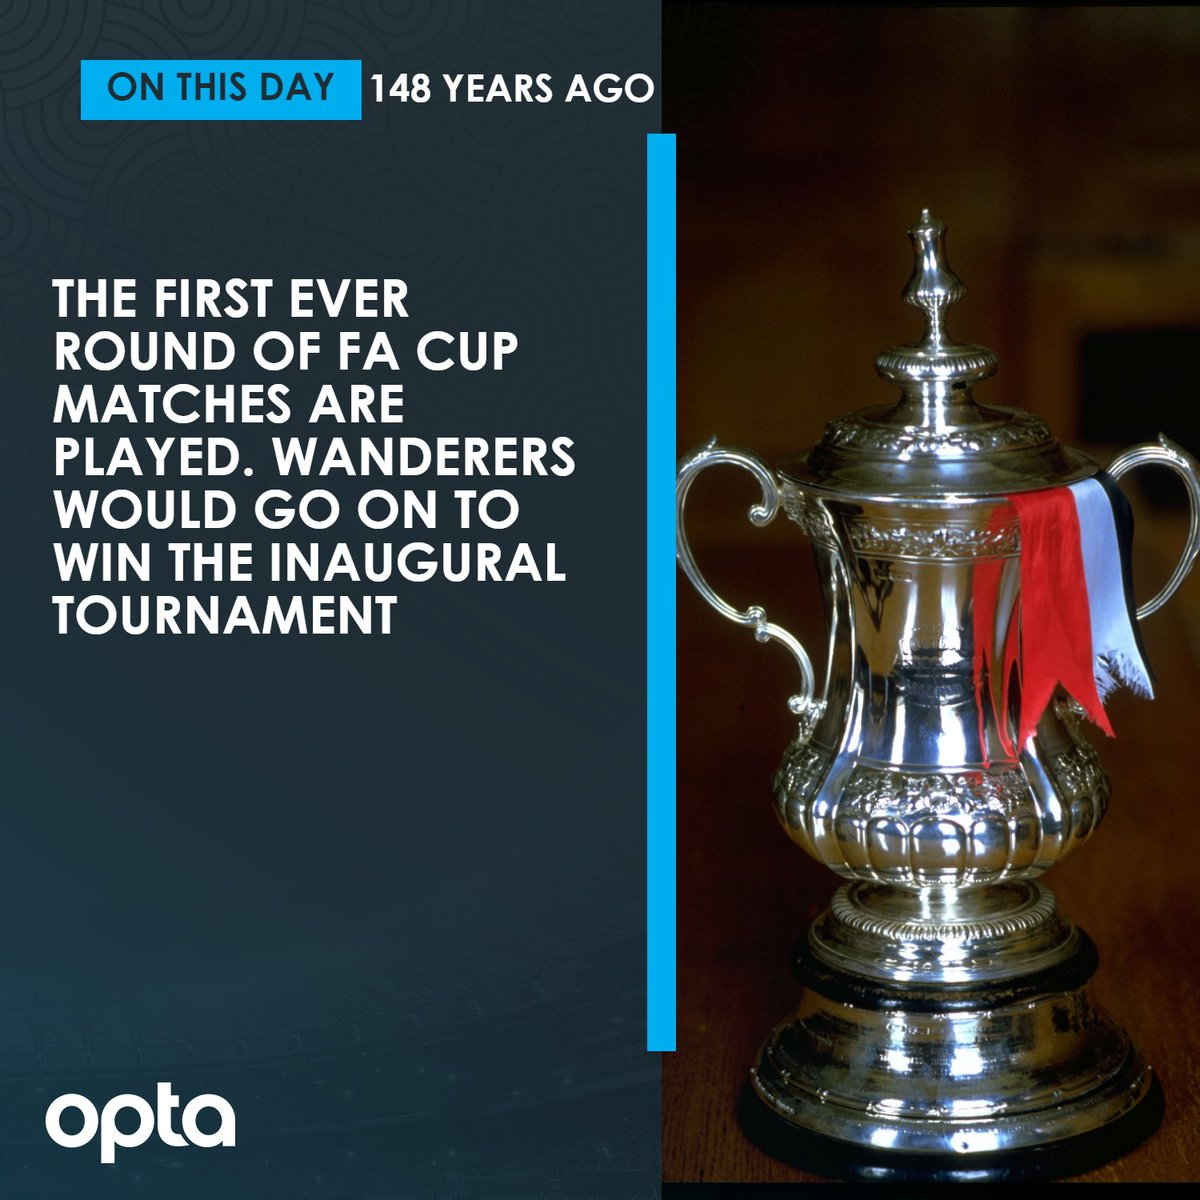 11/11 - On this day in 1871, the first-ever round of FA Cup matches are played. Wanderers would go on to win the inaugural tournament. Remember.